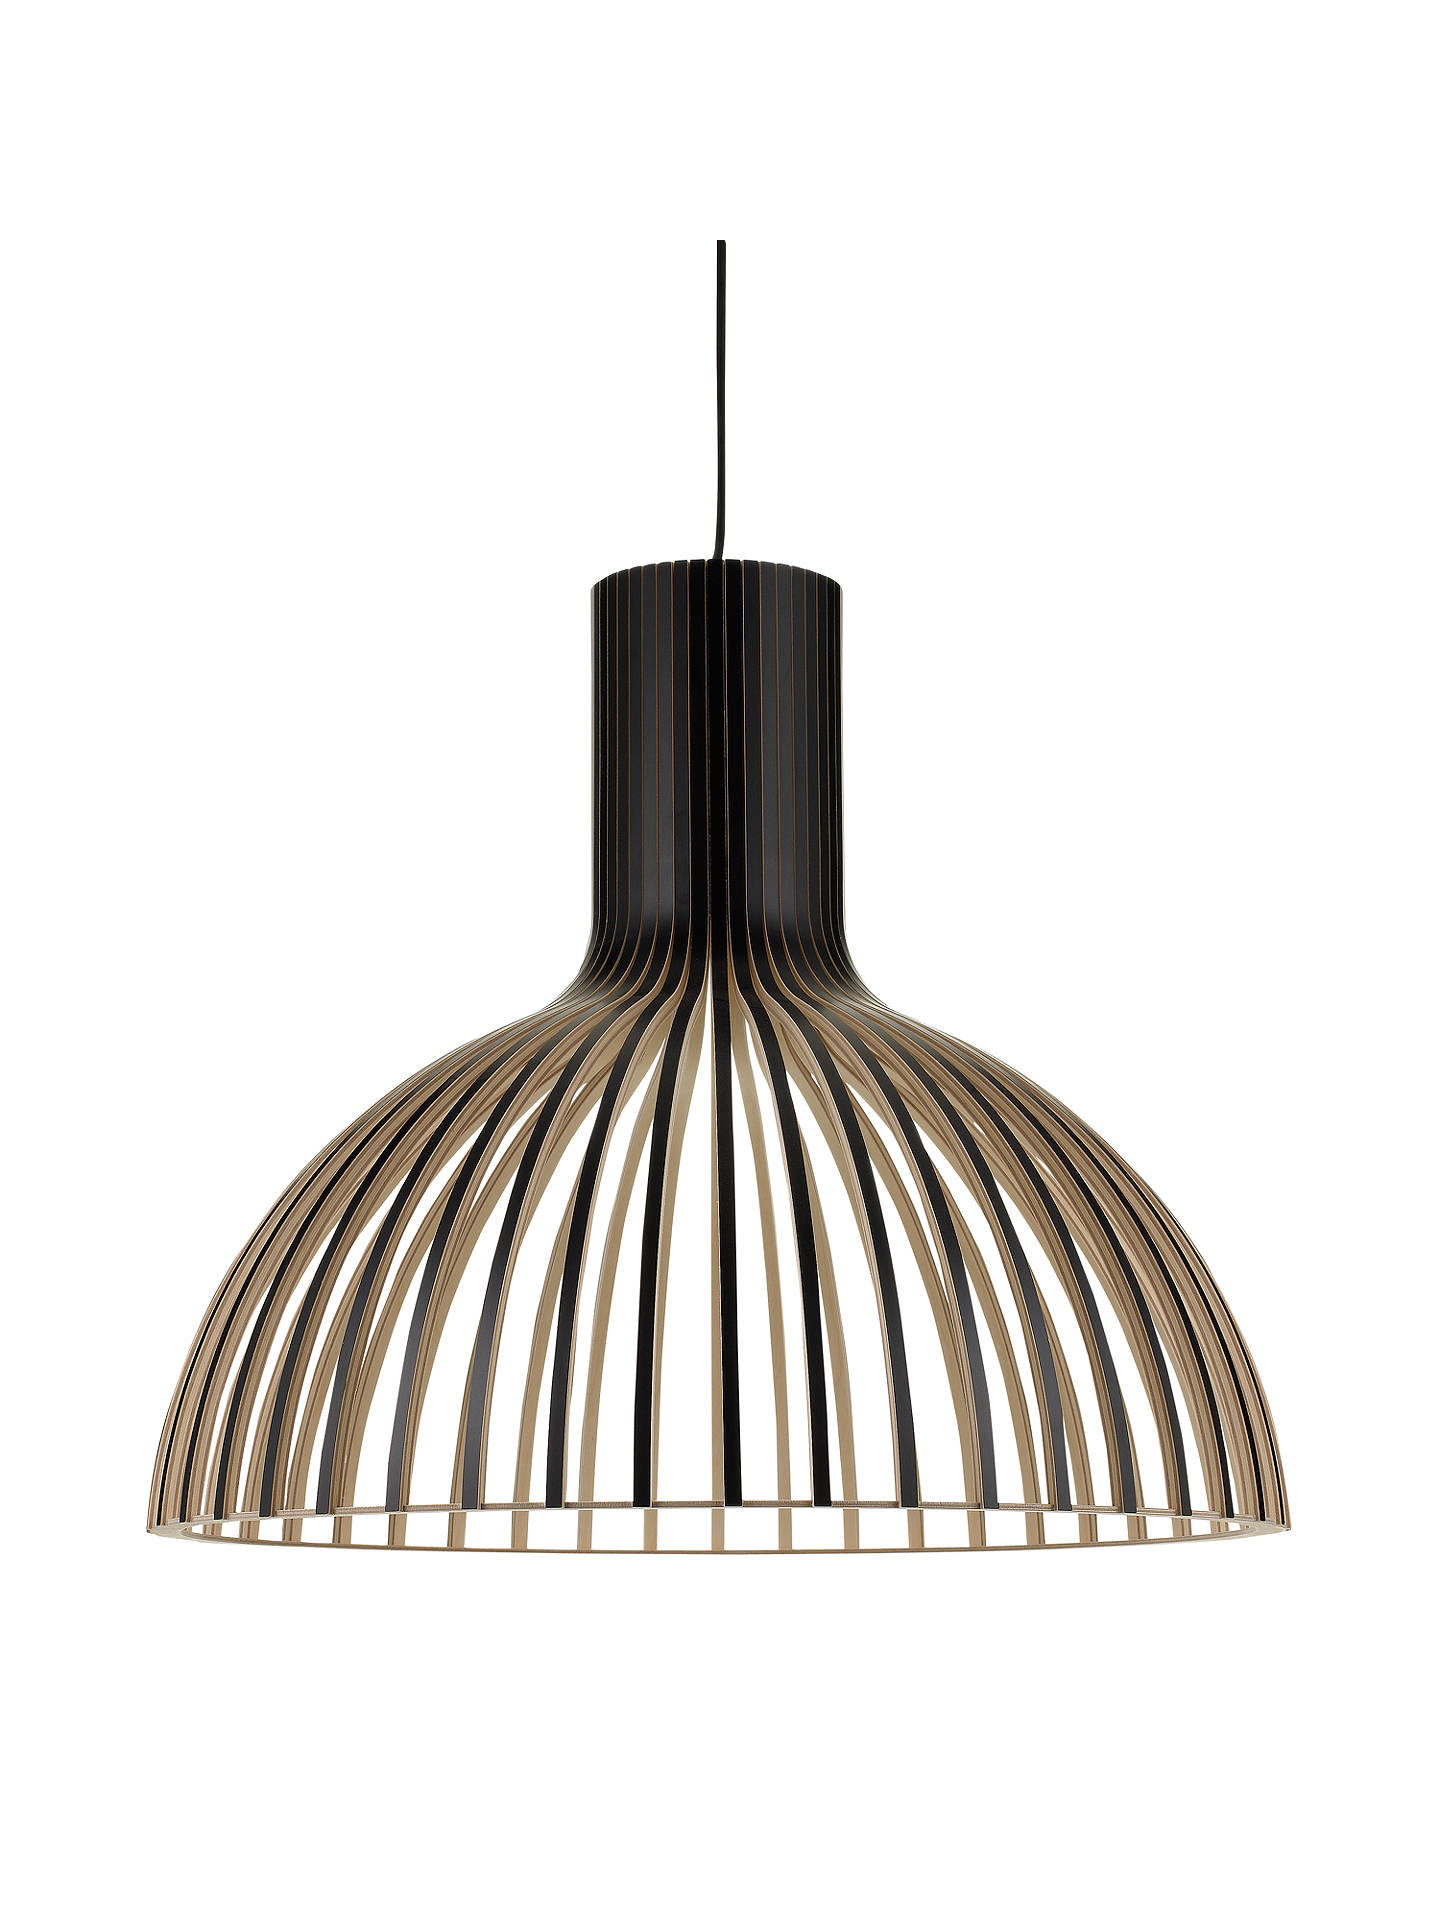 BuySecto Victo Ceiling Light, Black Online at johnlewis.com